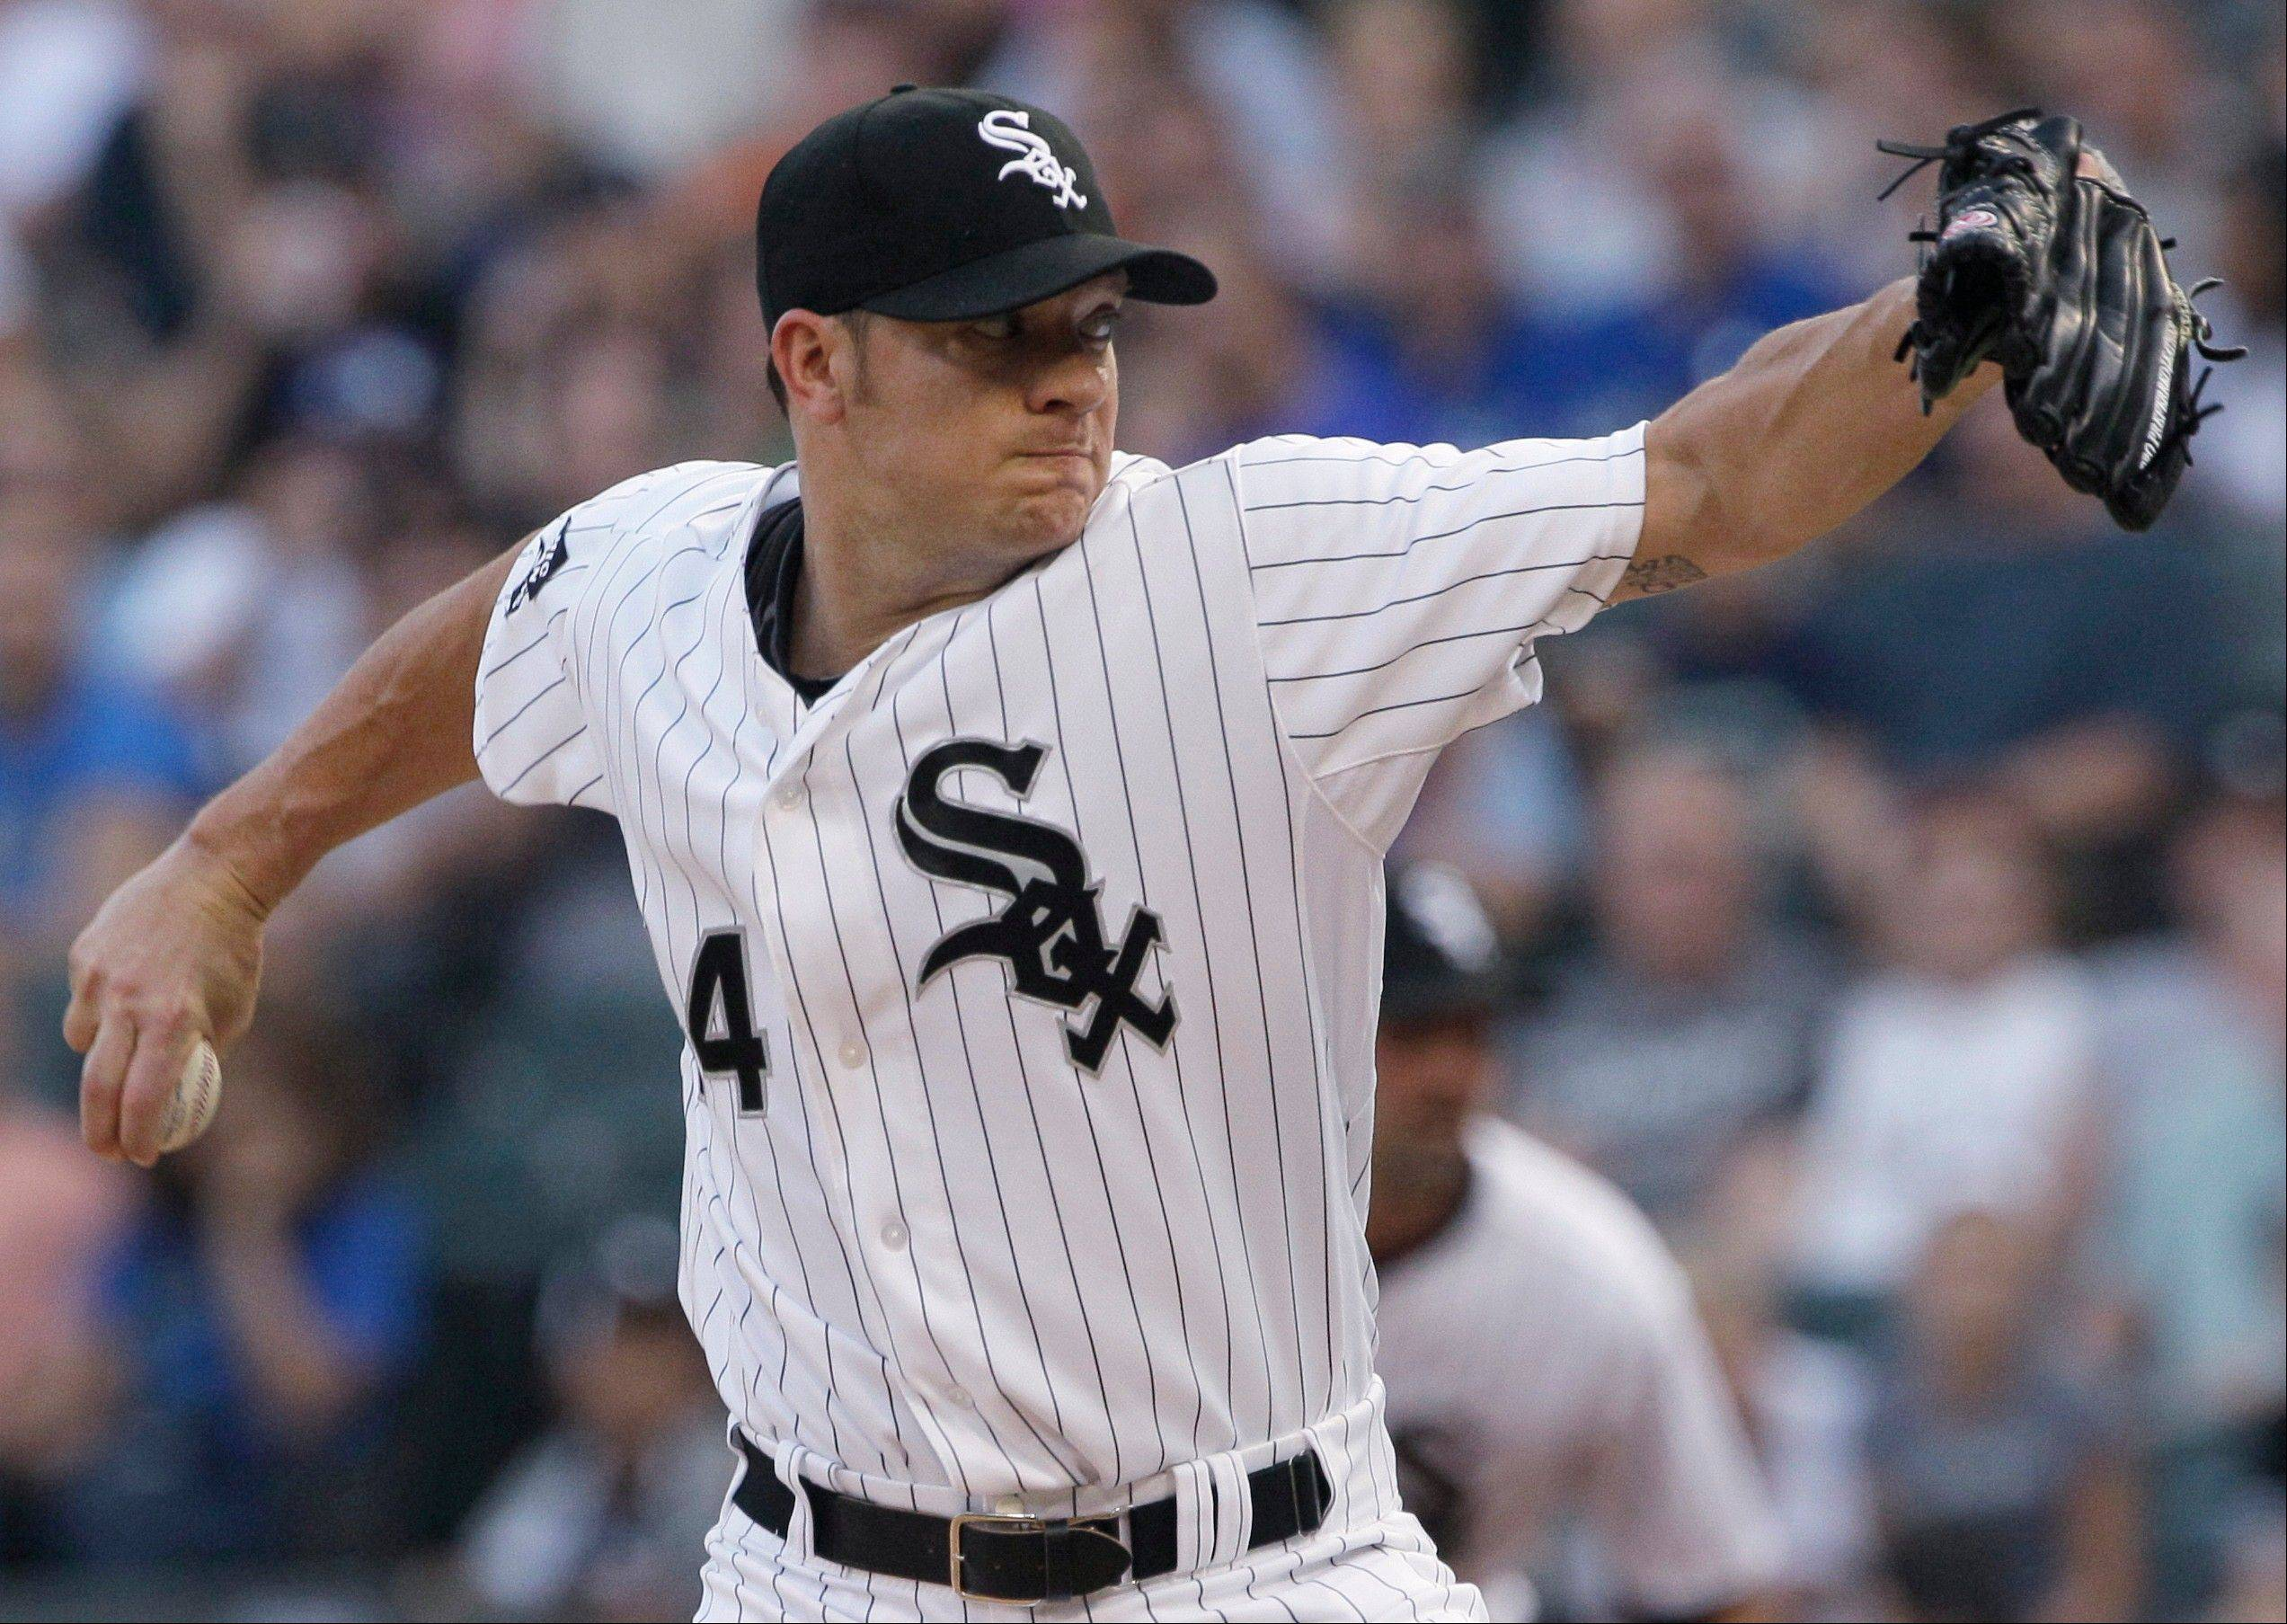 The White Sox have signed starter Jake Peavy to a two-year deal with an option for a third season.